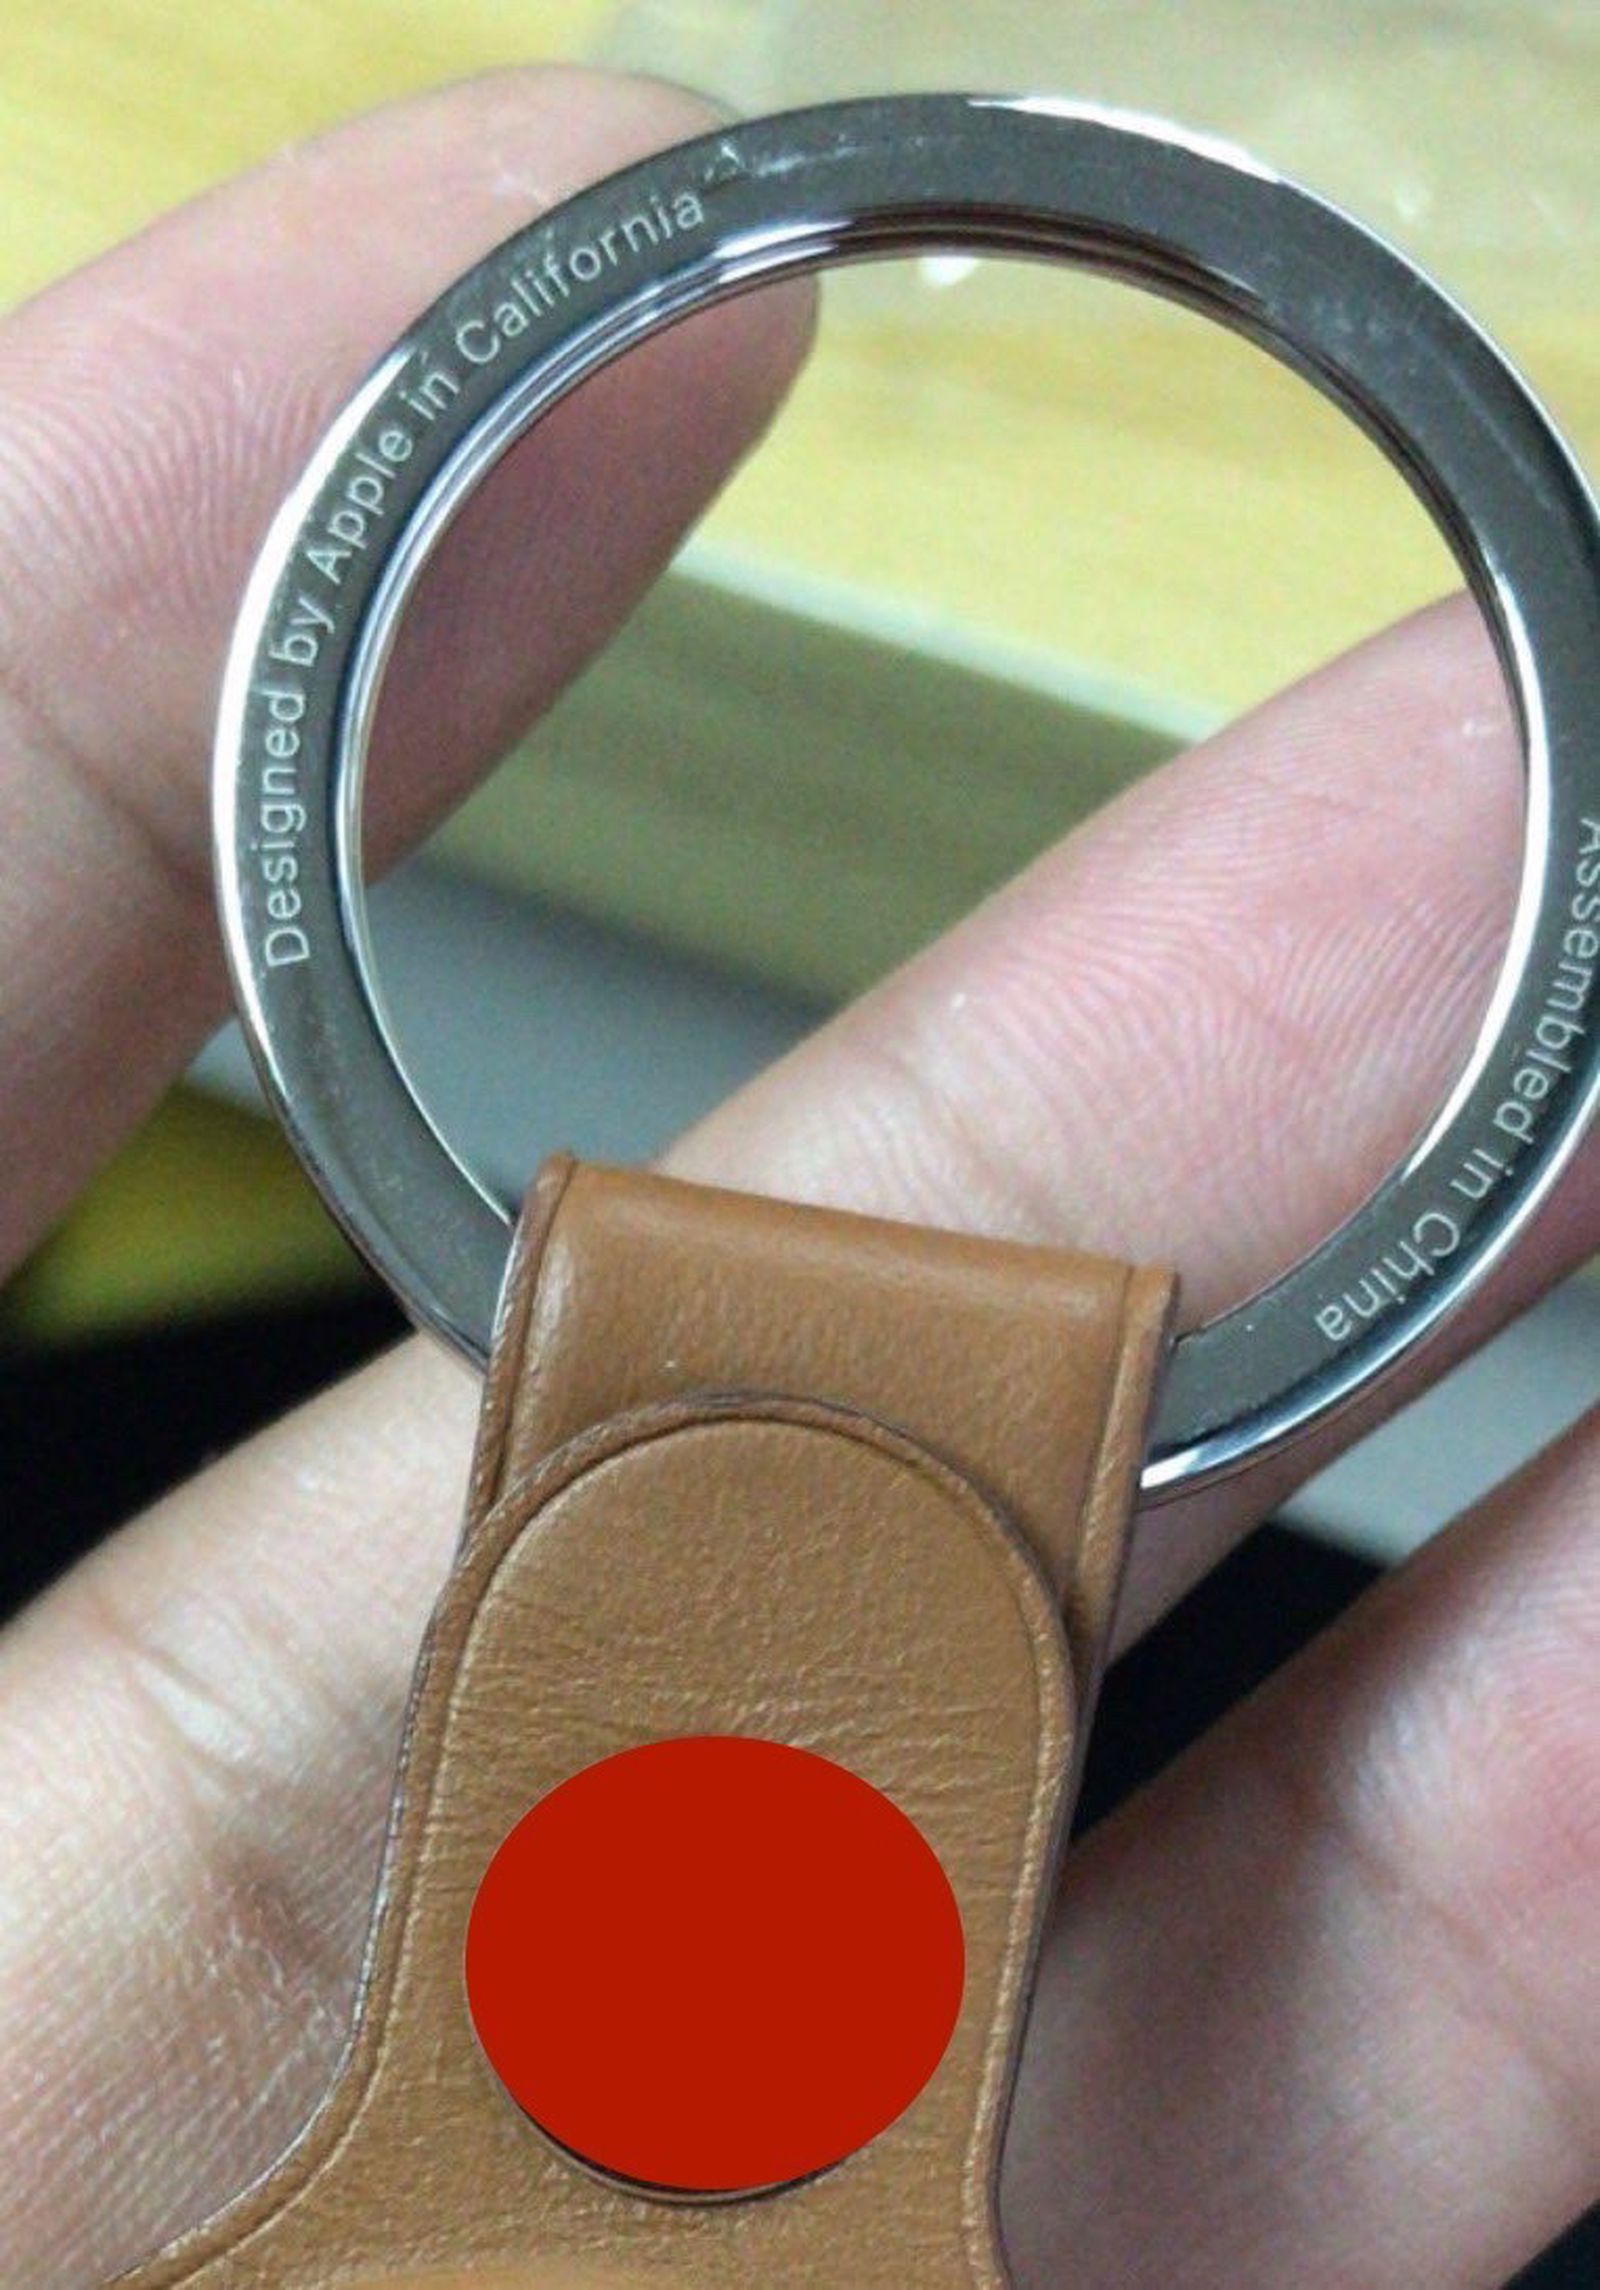 Photo Depicts Alleged AirTag Keychain